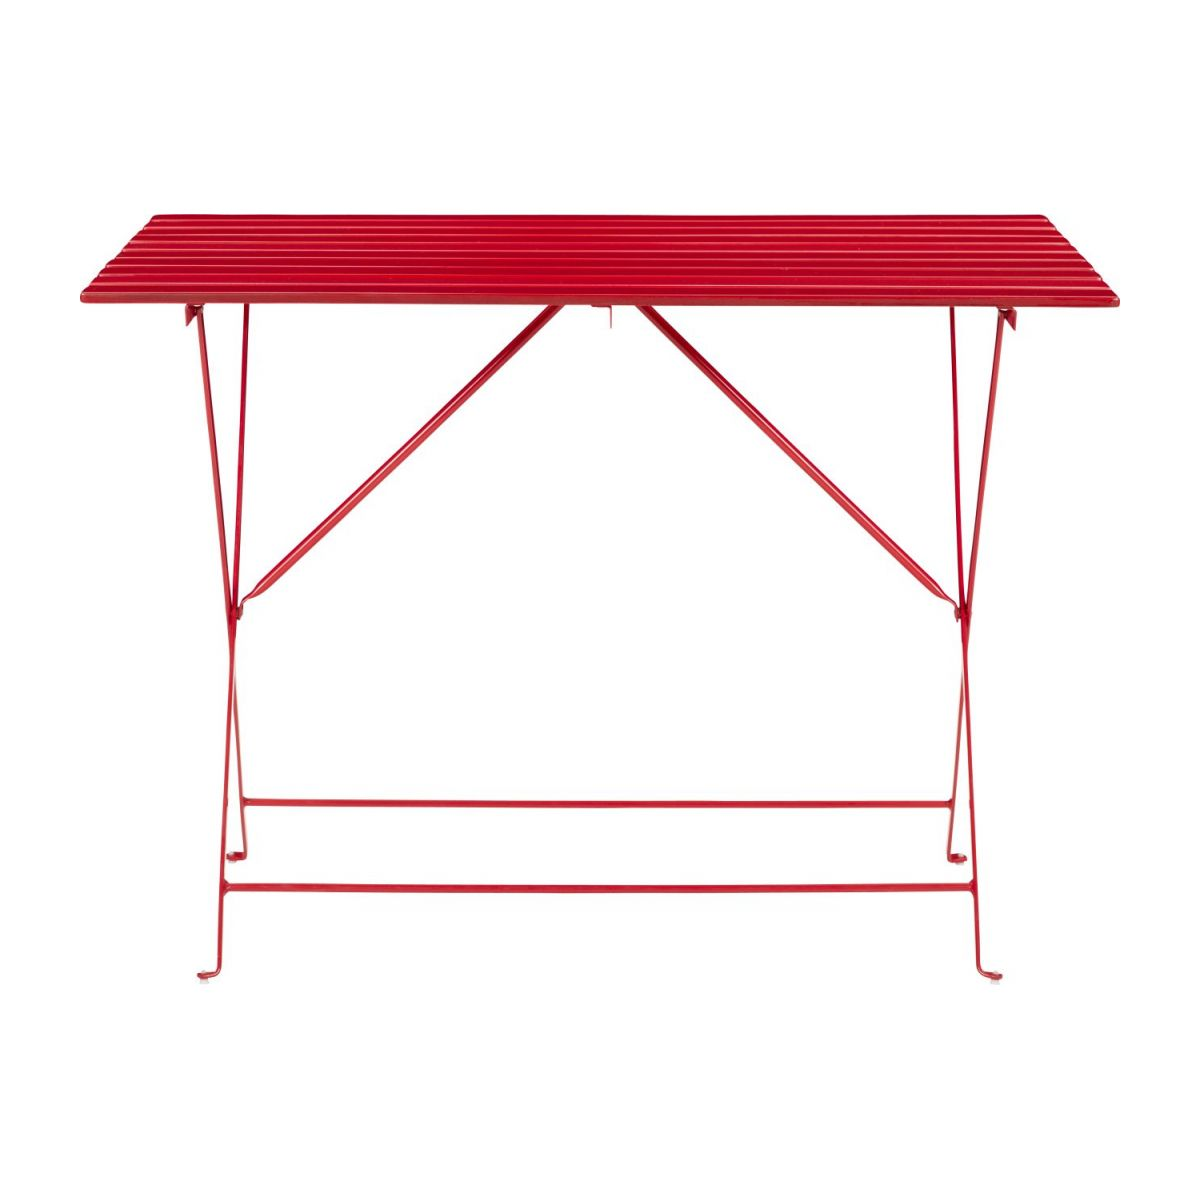 Table De Jardin Rouge Table De Jardin Pliante Parc Rouge Design Habitat Habitat